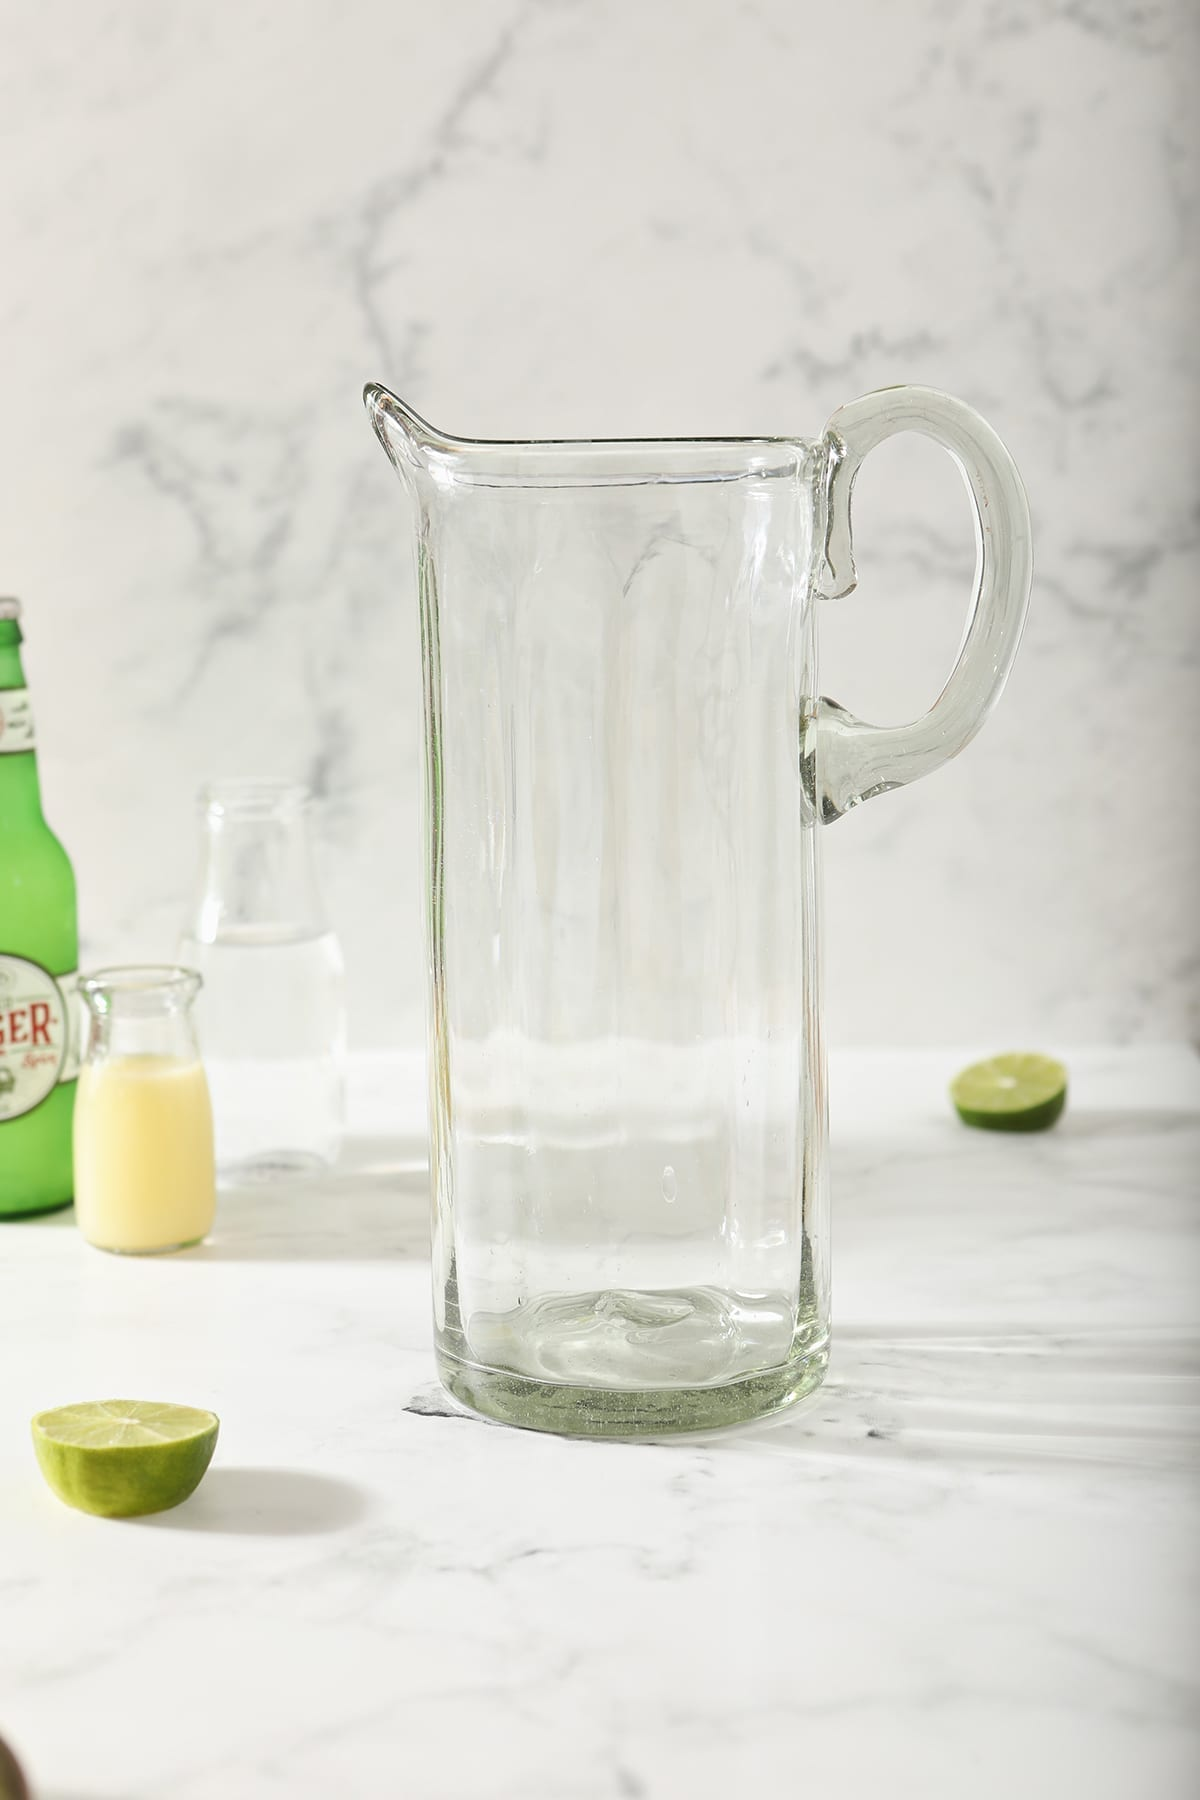 An empty pitcher next to lime juice, vodka and ginger beer